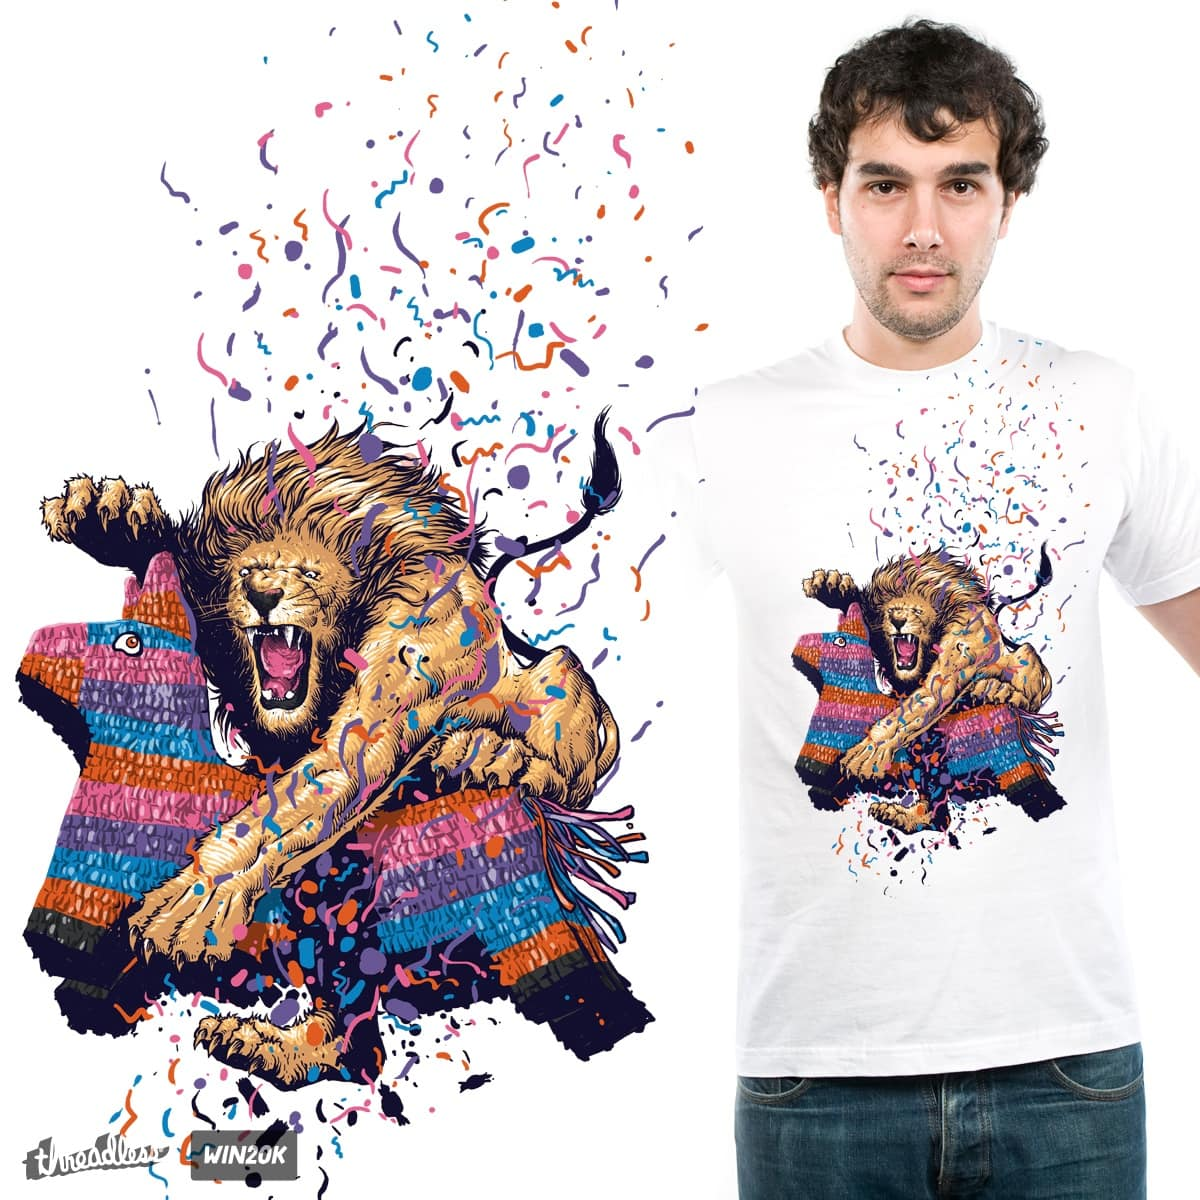 Animal Instinct by ndrue182 and goliath72 on Threadless